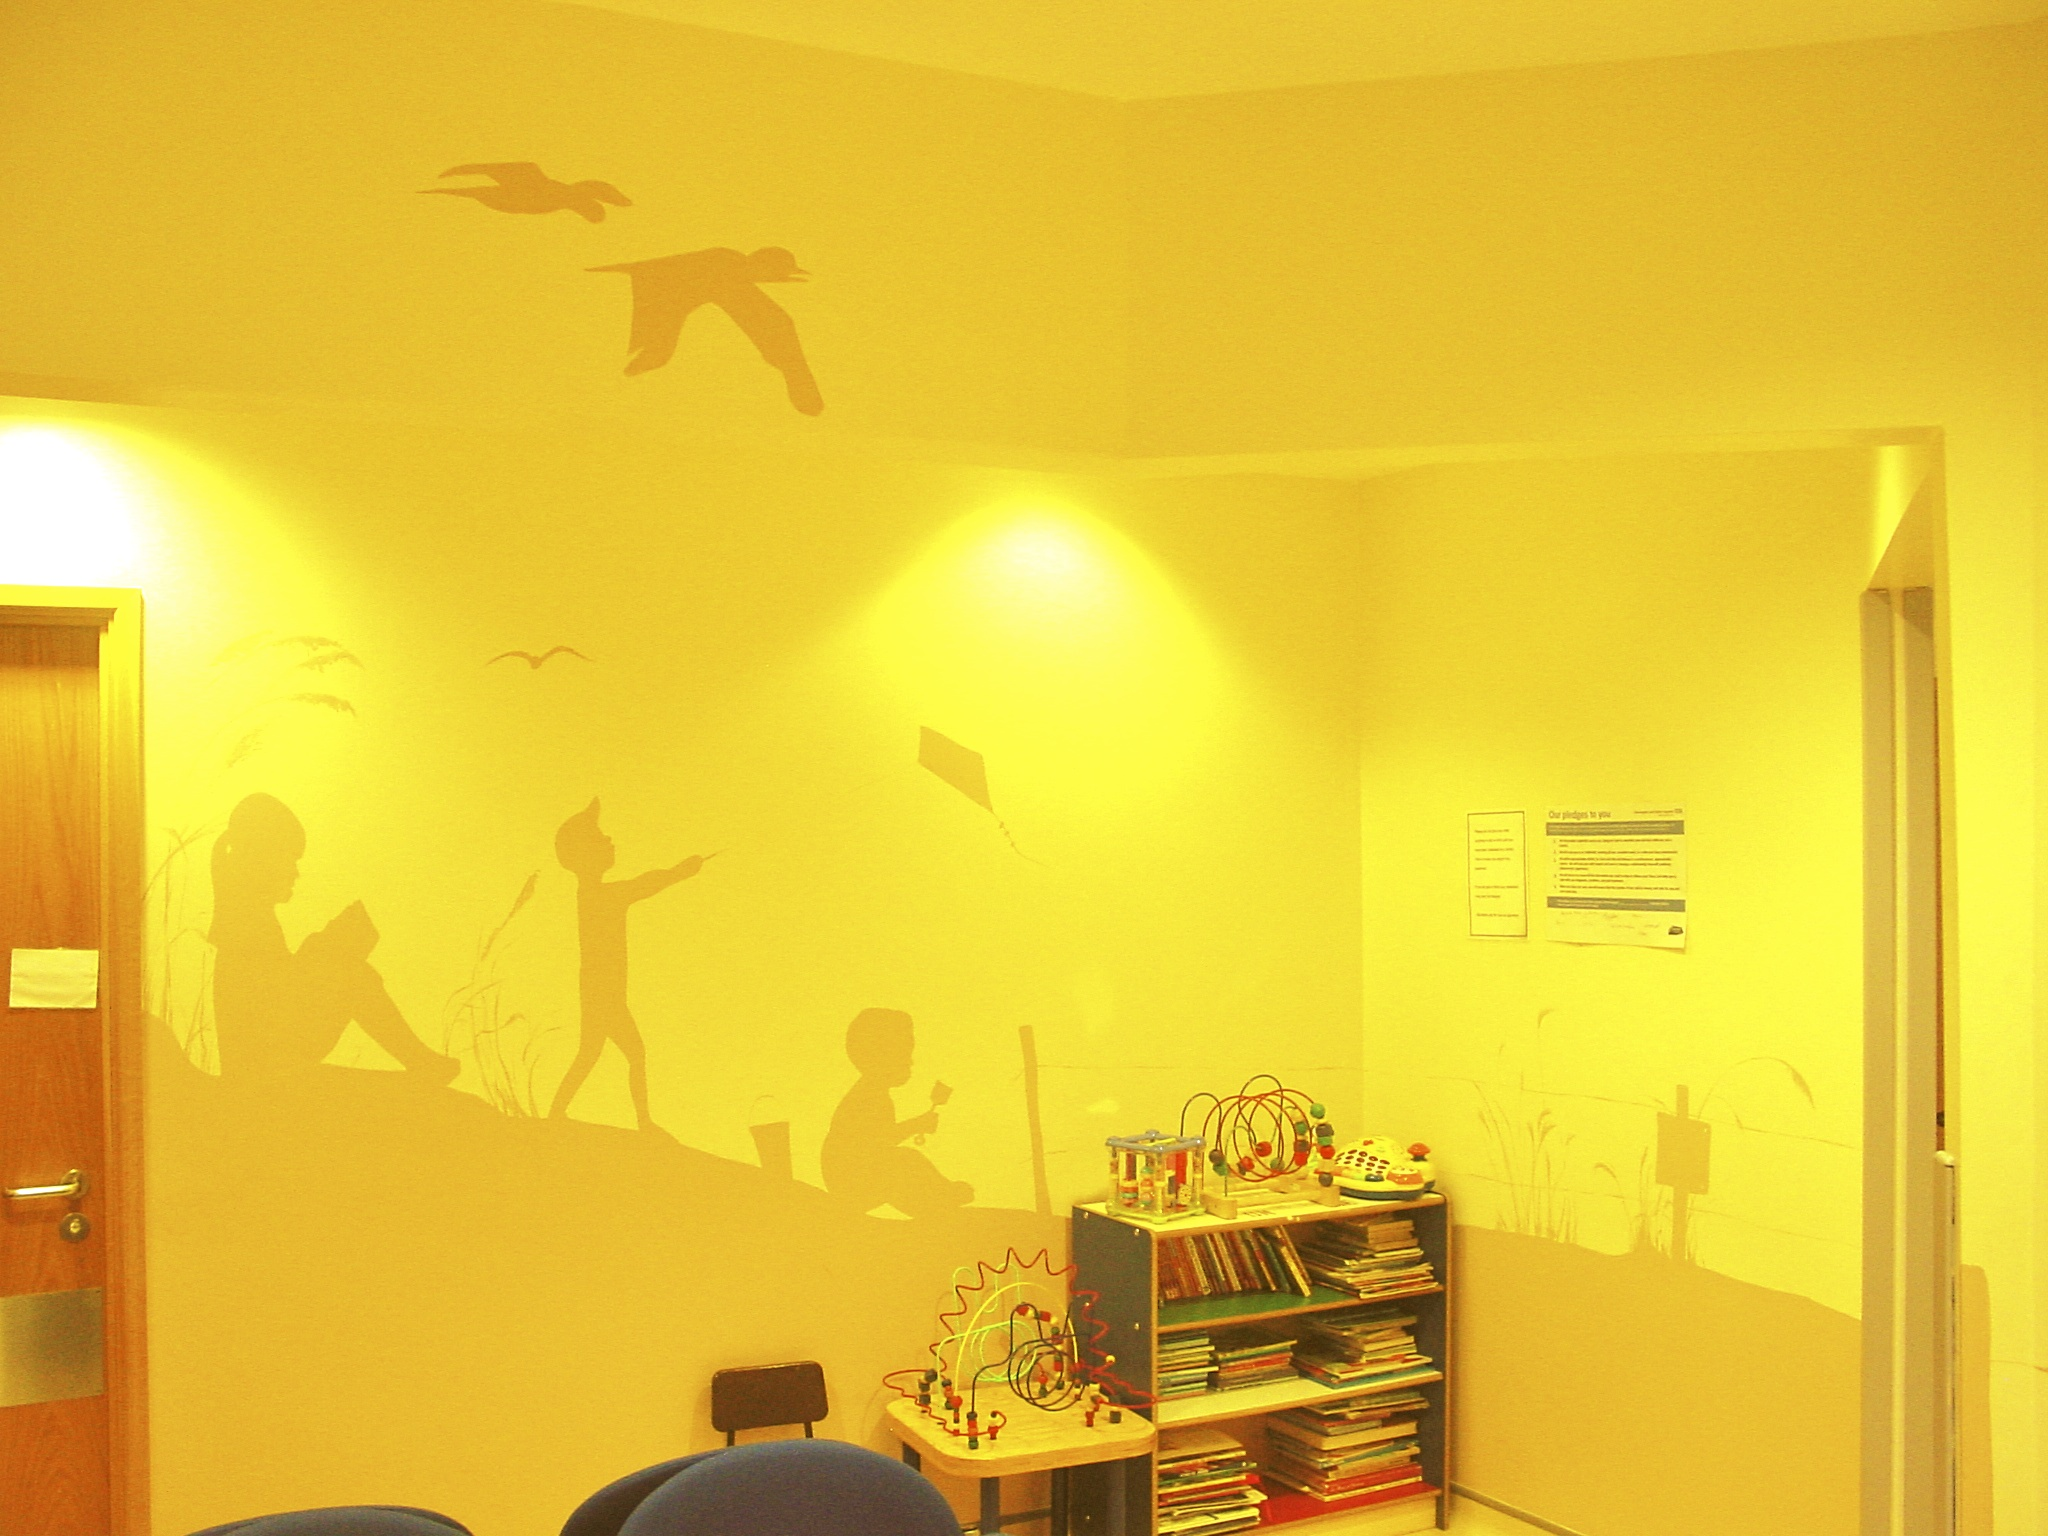 Children's A&E waiting room painted mural